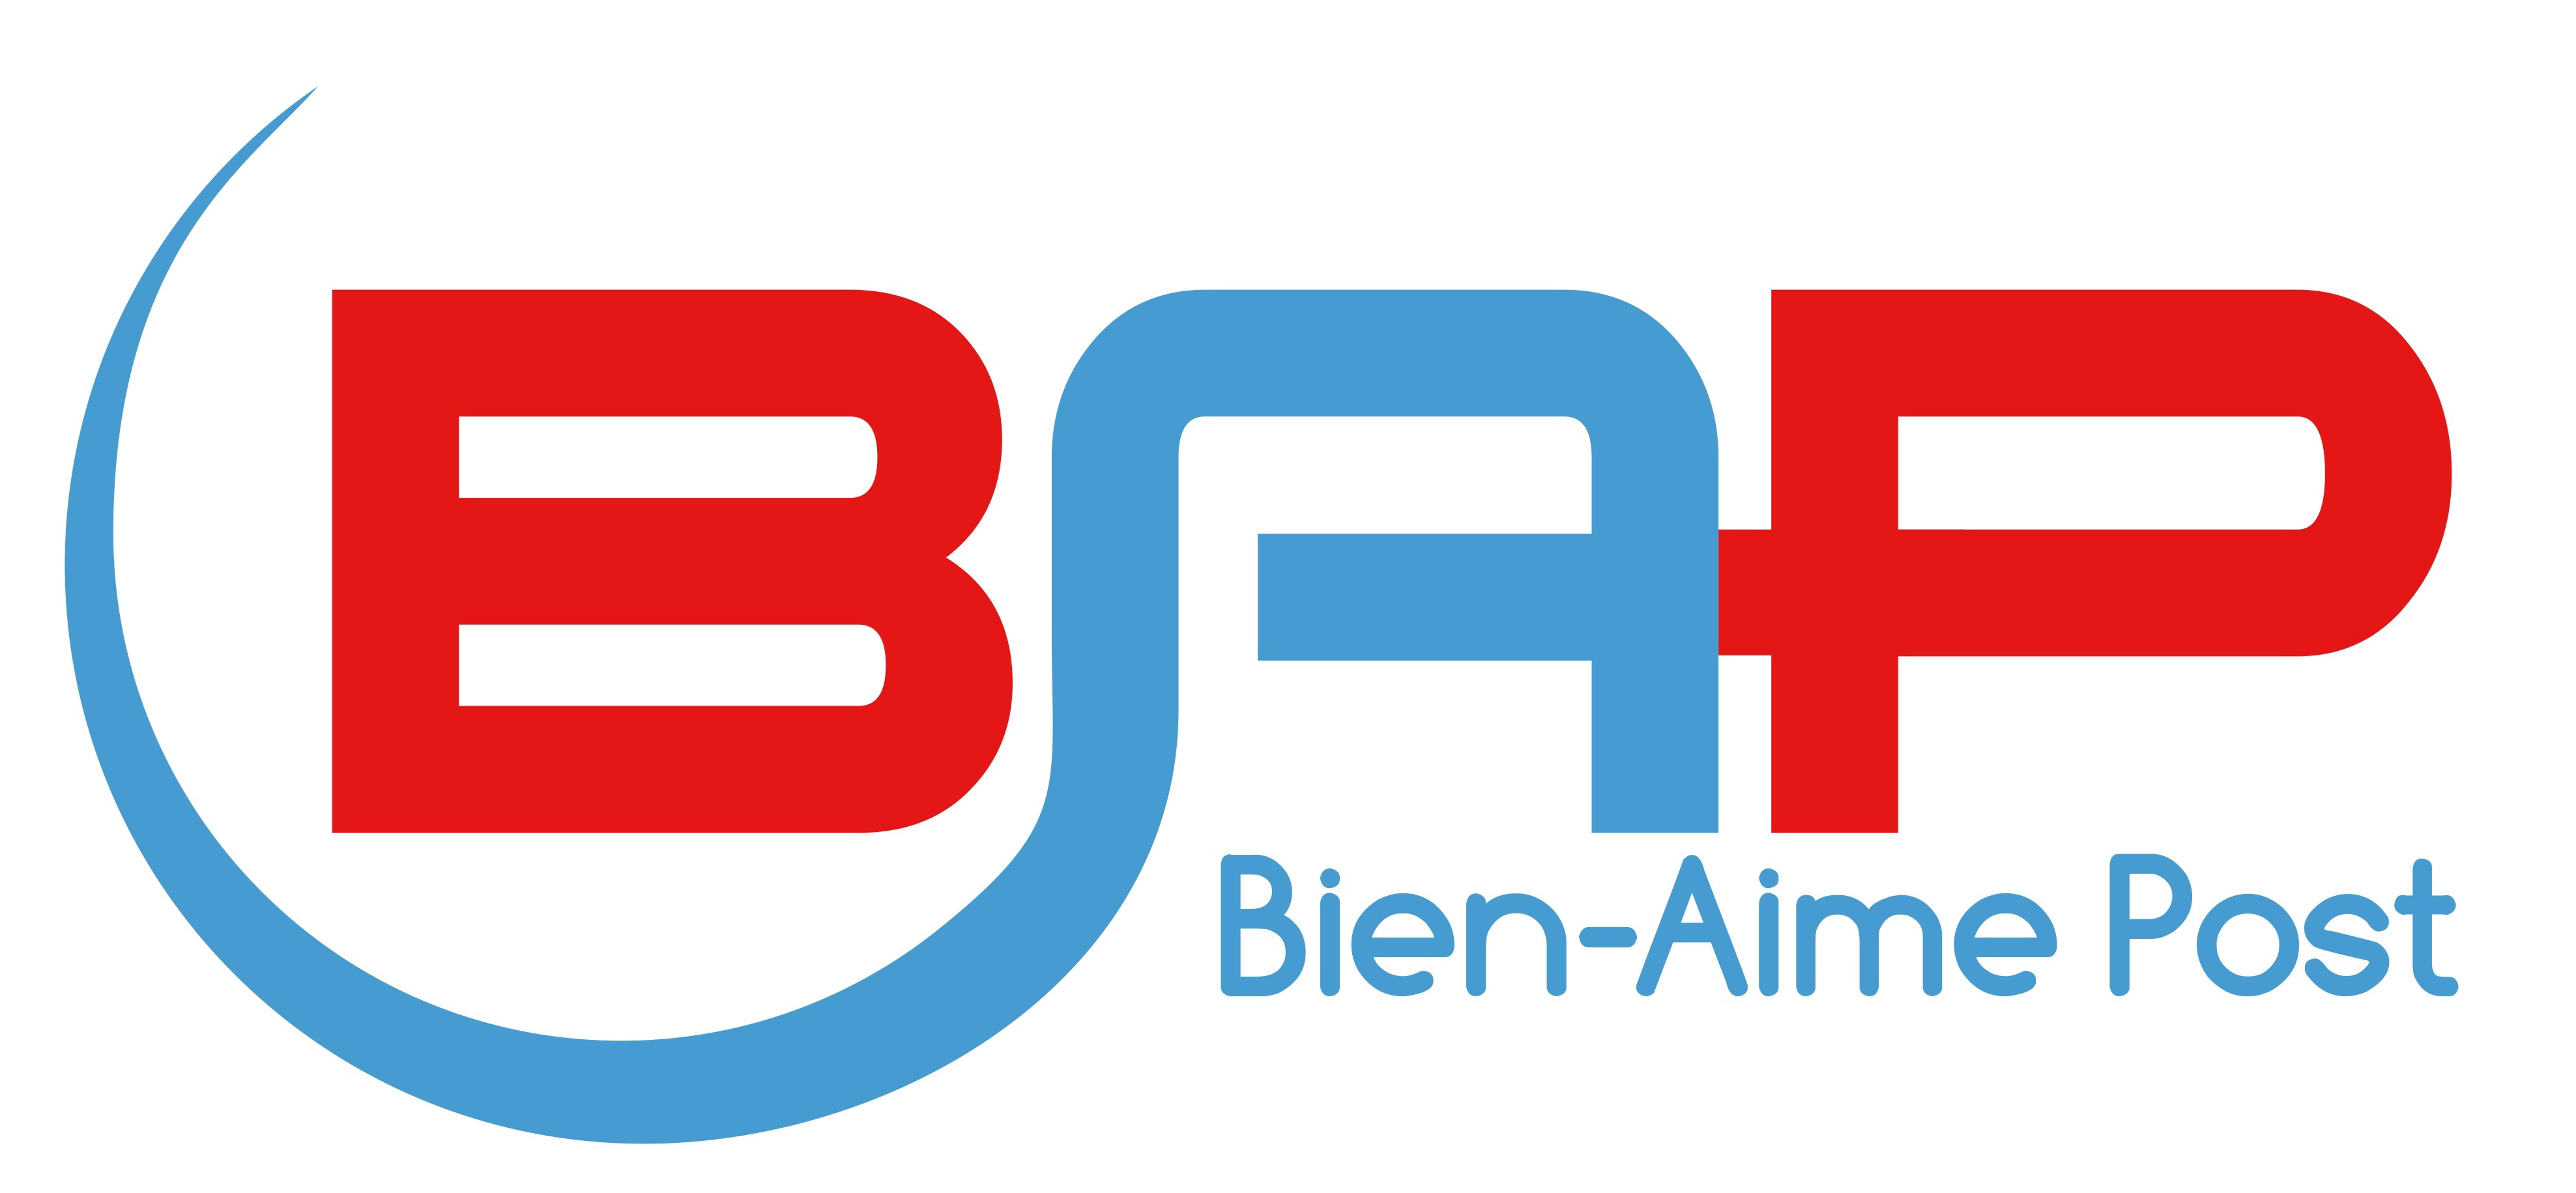 bap logo 2016 bienaime post